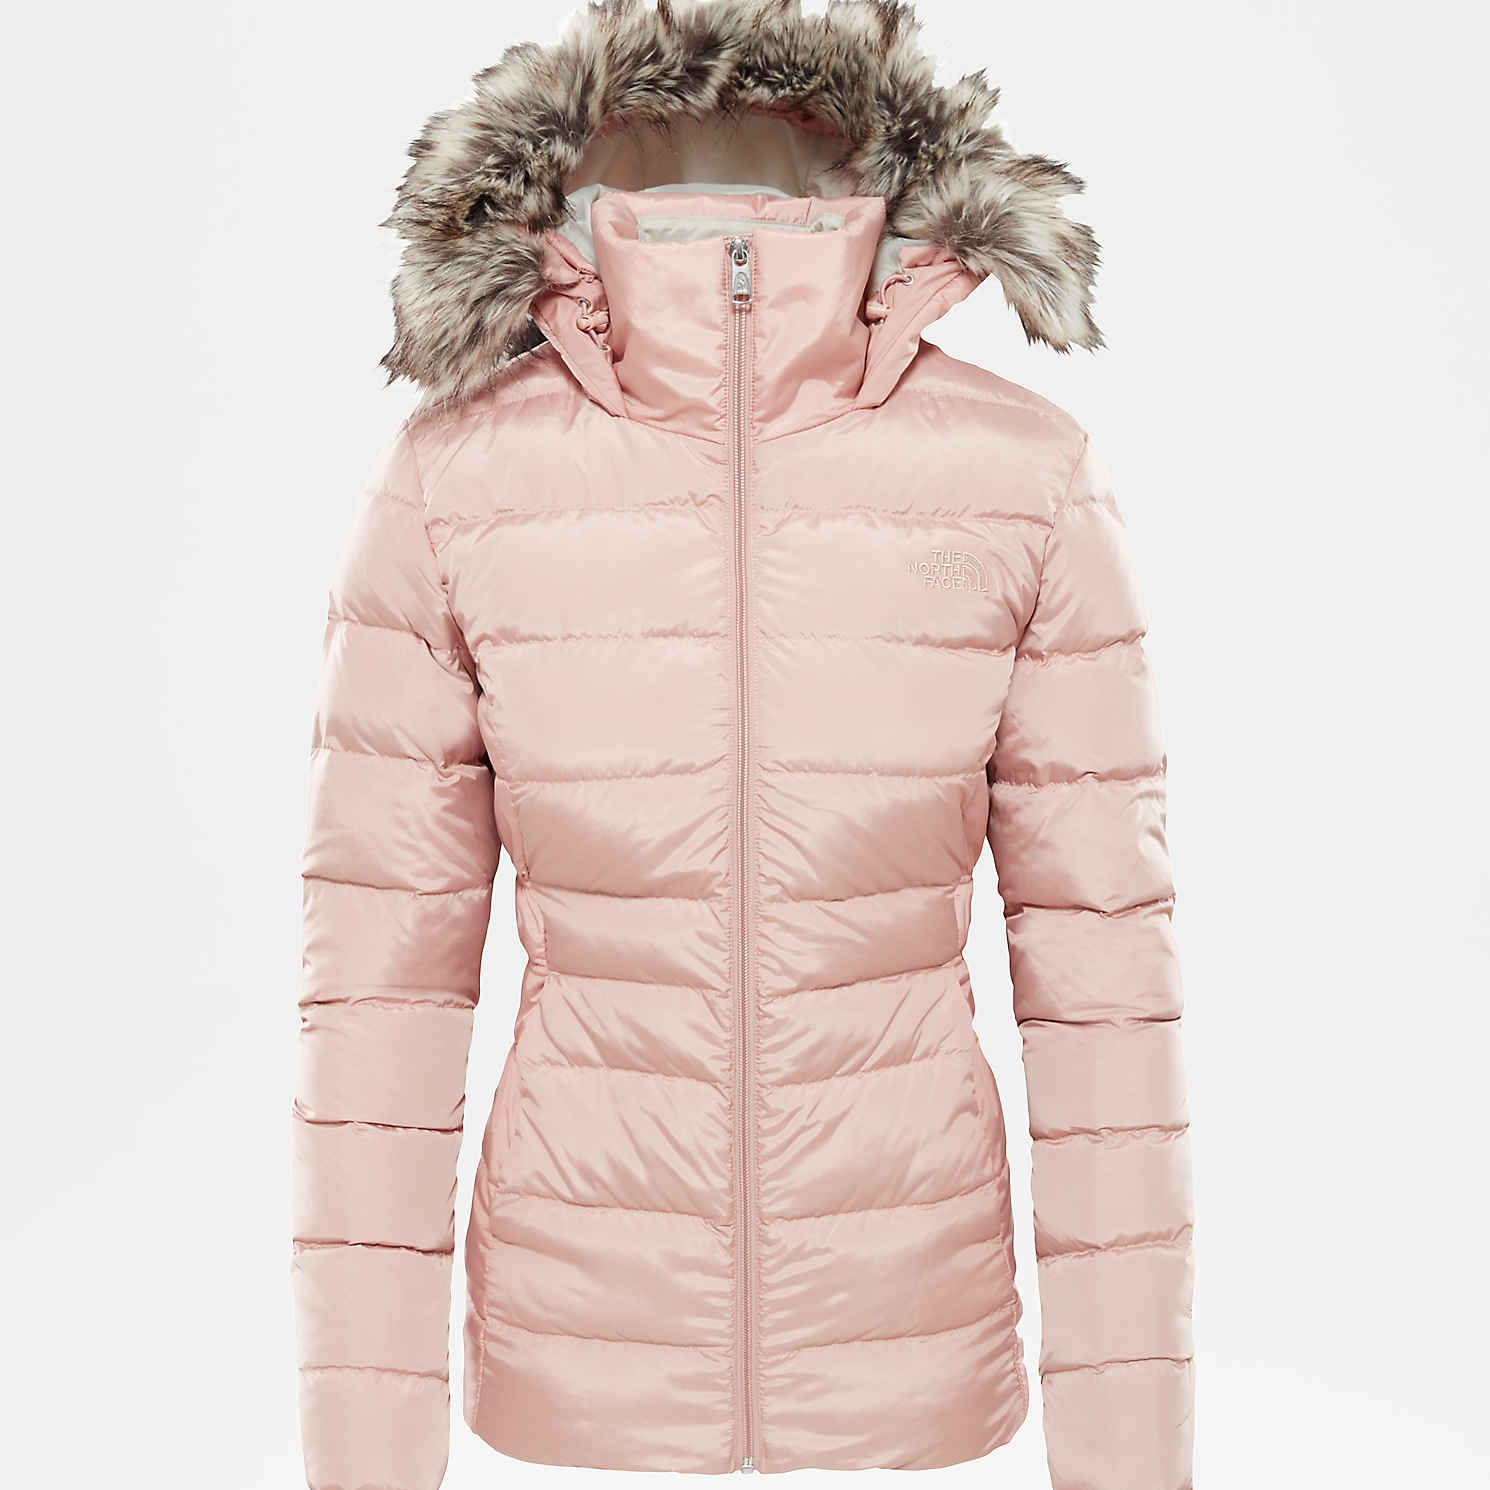 The north face. THE NORTH FACE GIACCA DONNA GOTHAM II 09d6359eeea0